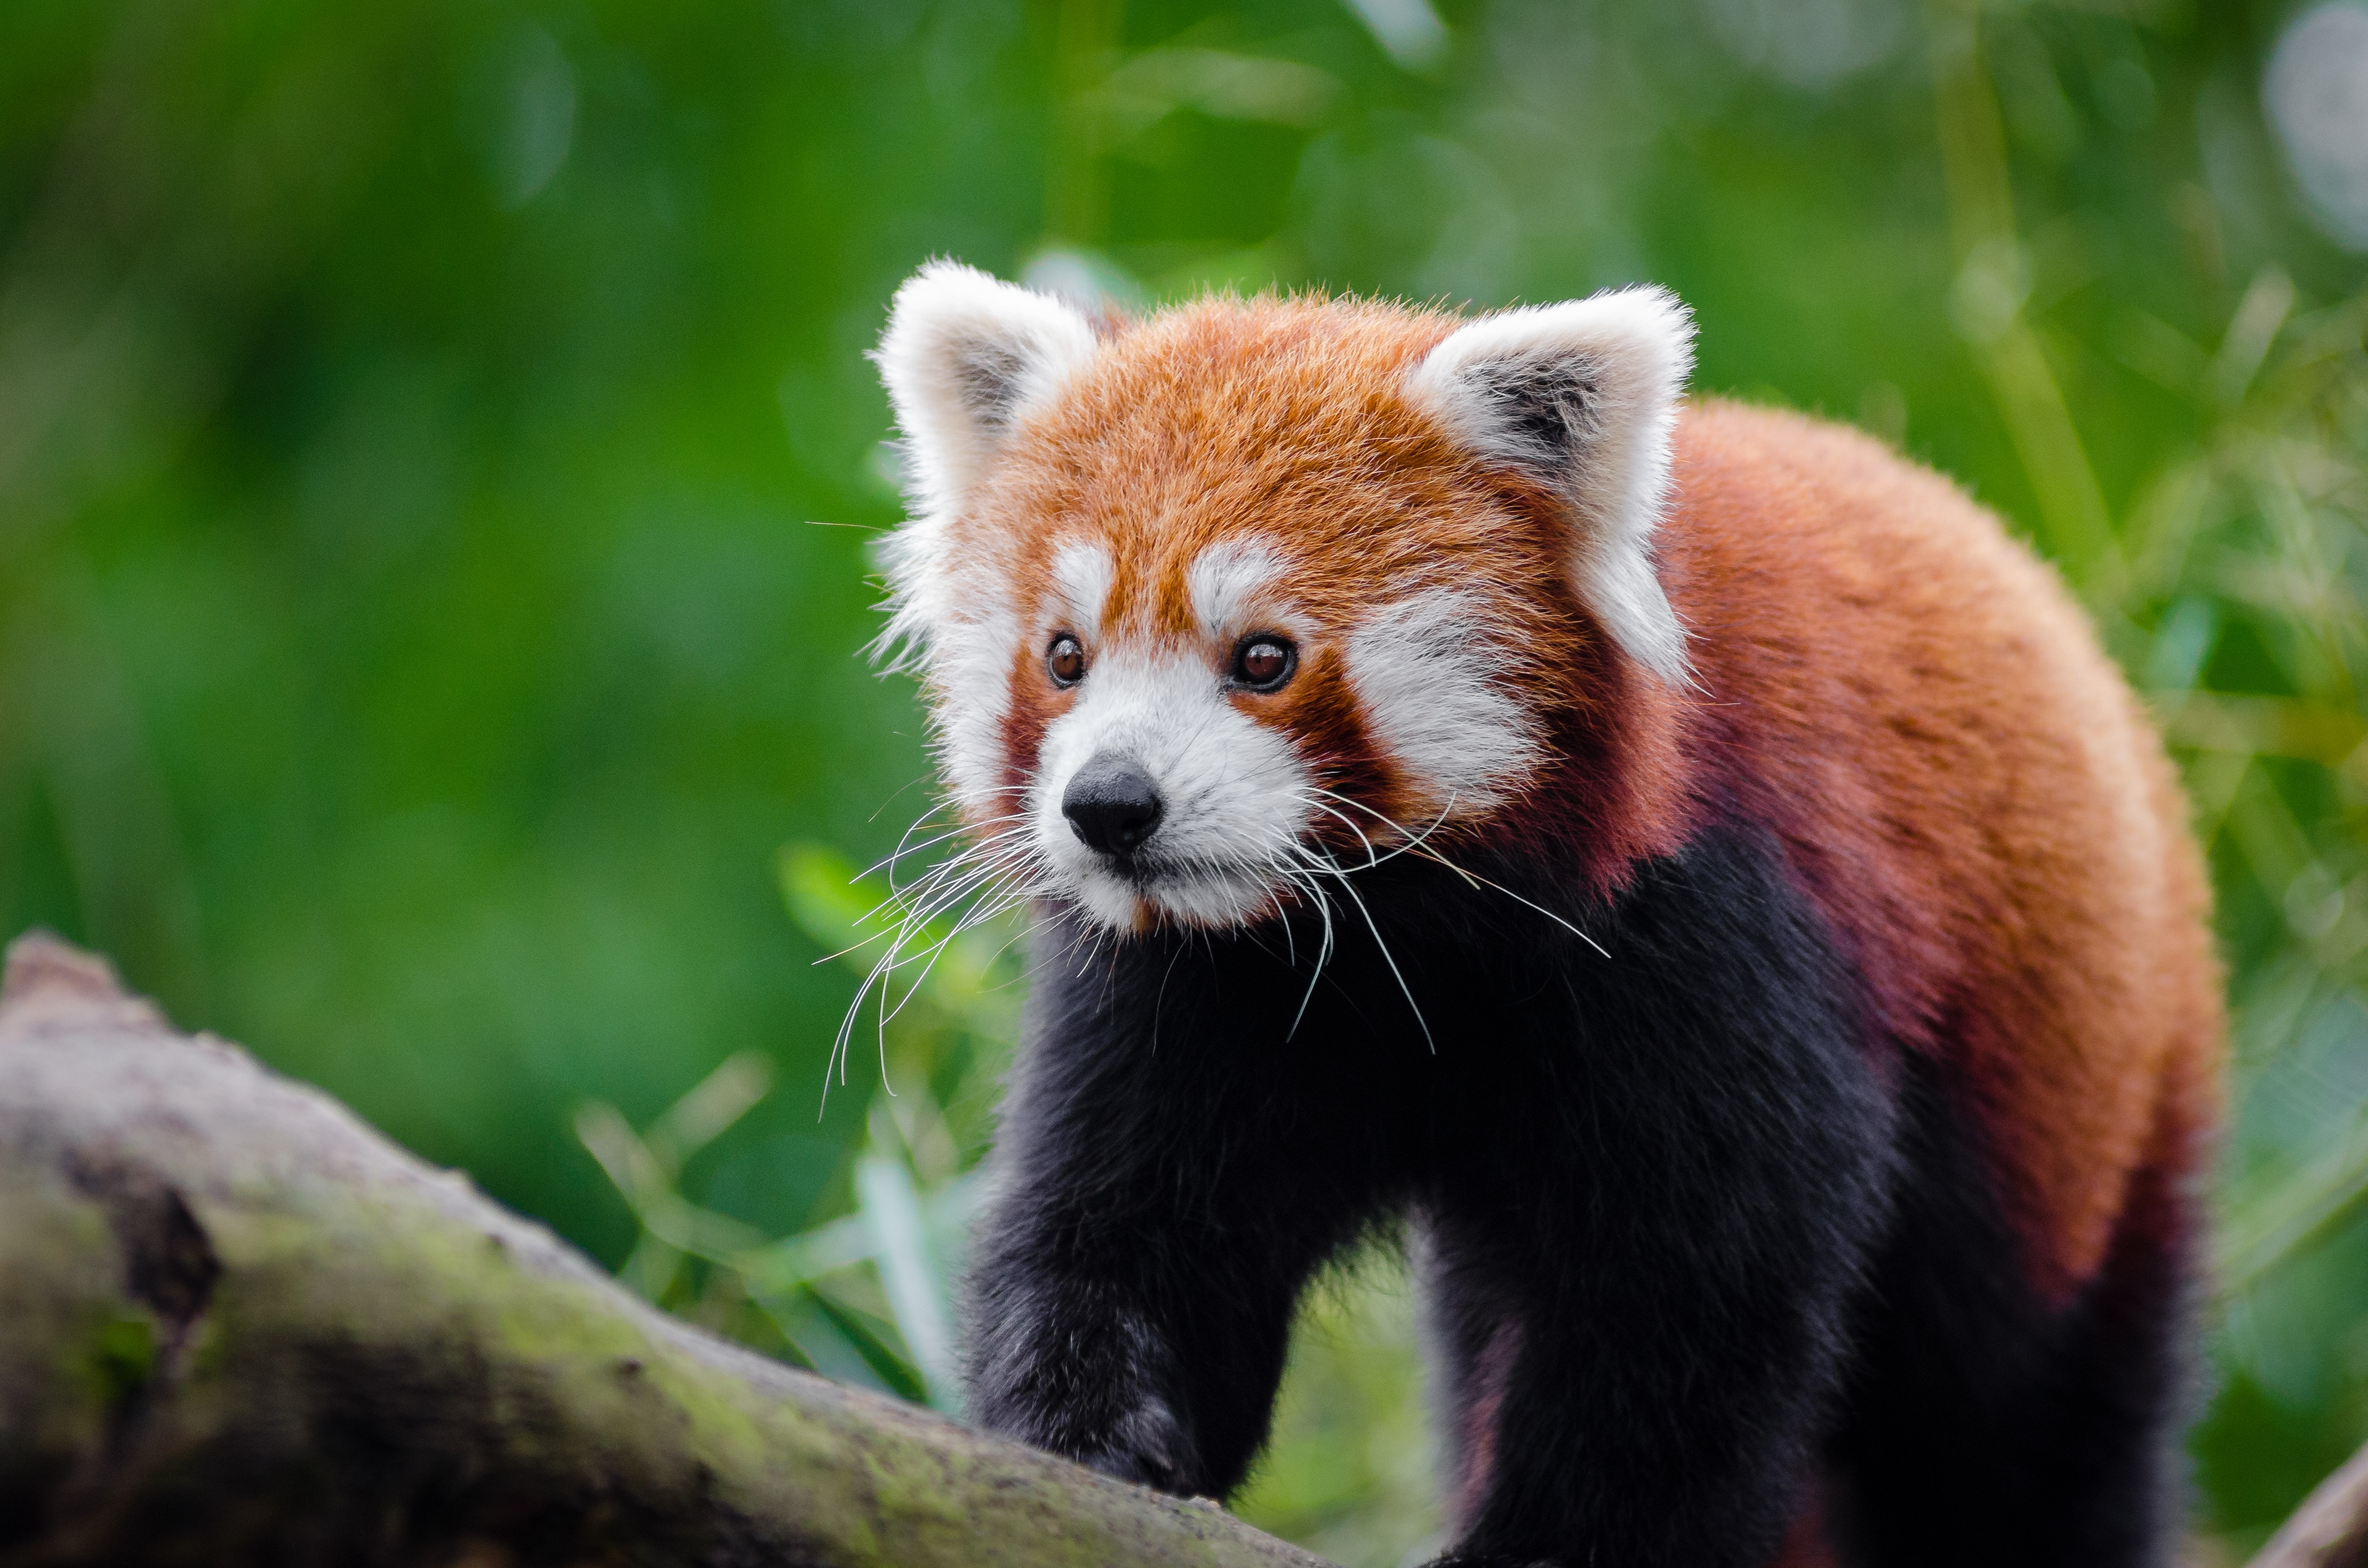 Red Panda on Brown Wood, Adorable, Mammal, Wilderness, Wild animal, HQ Photo